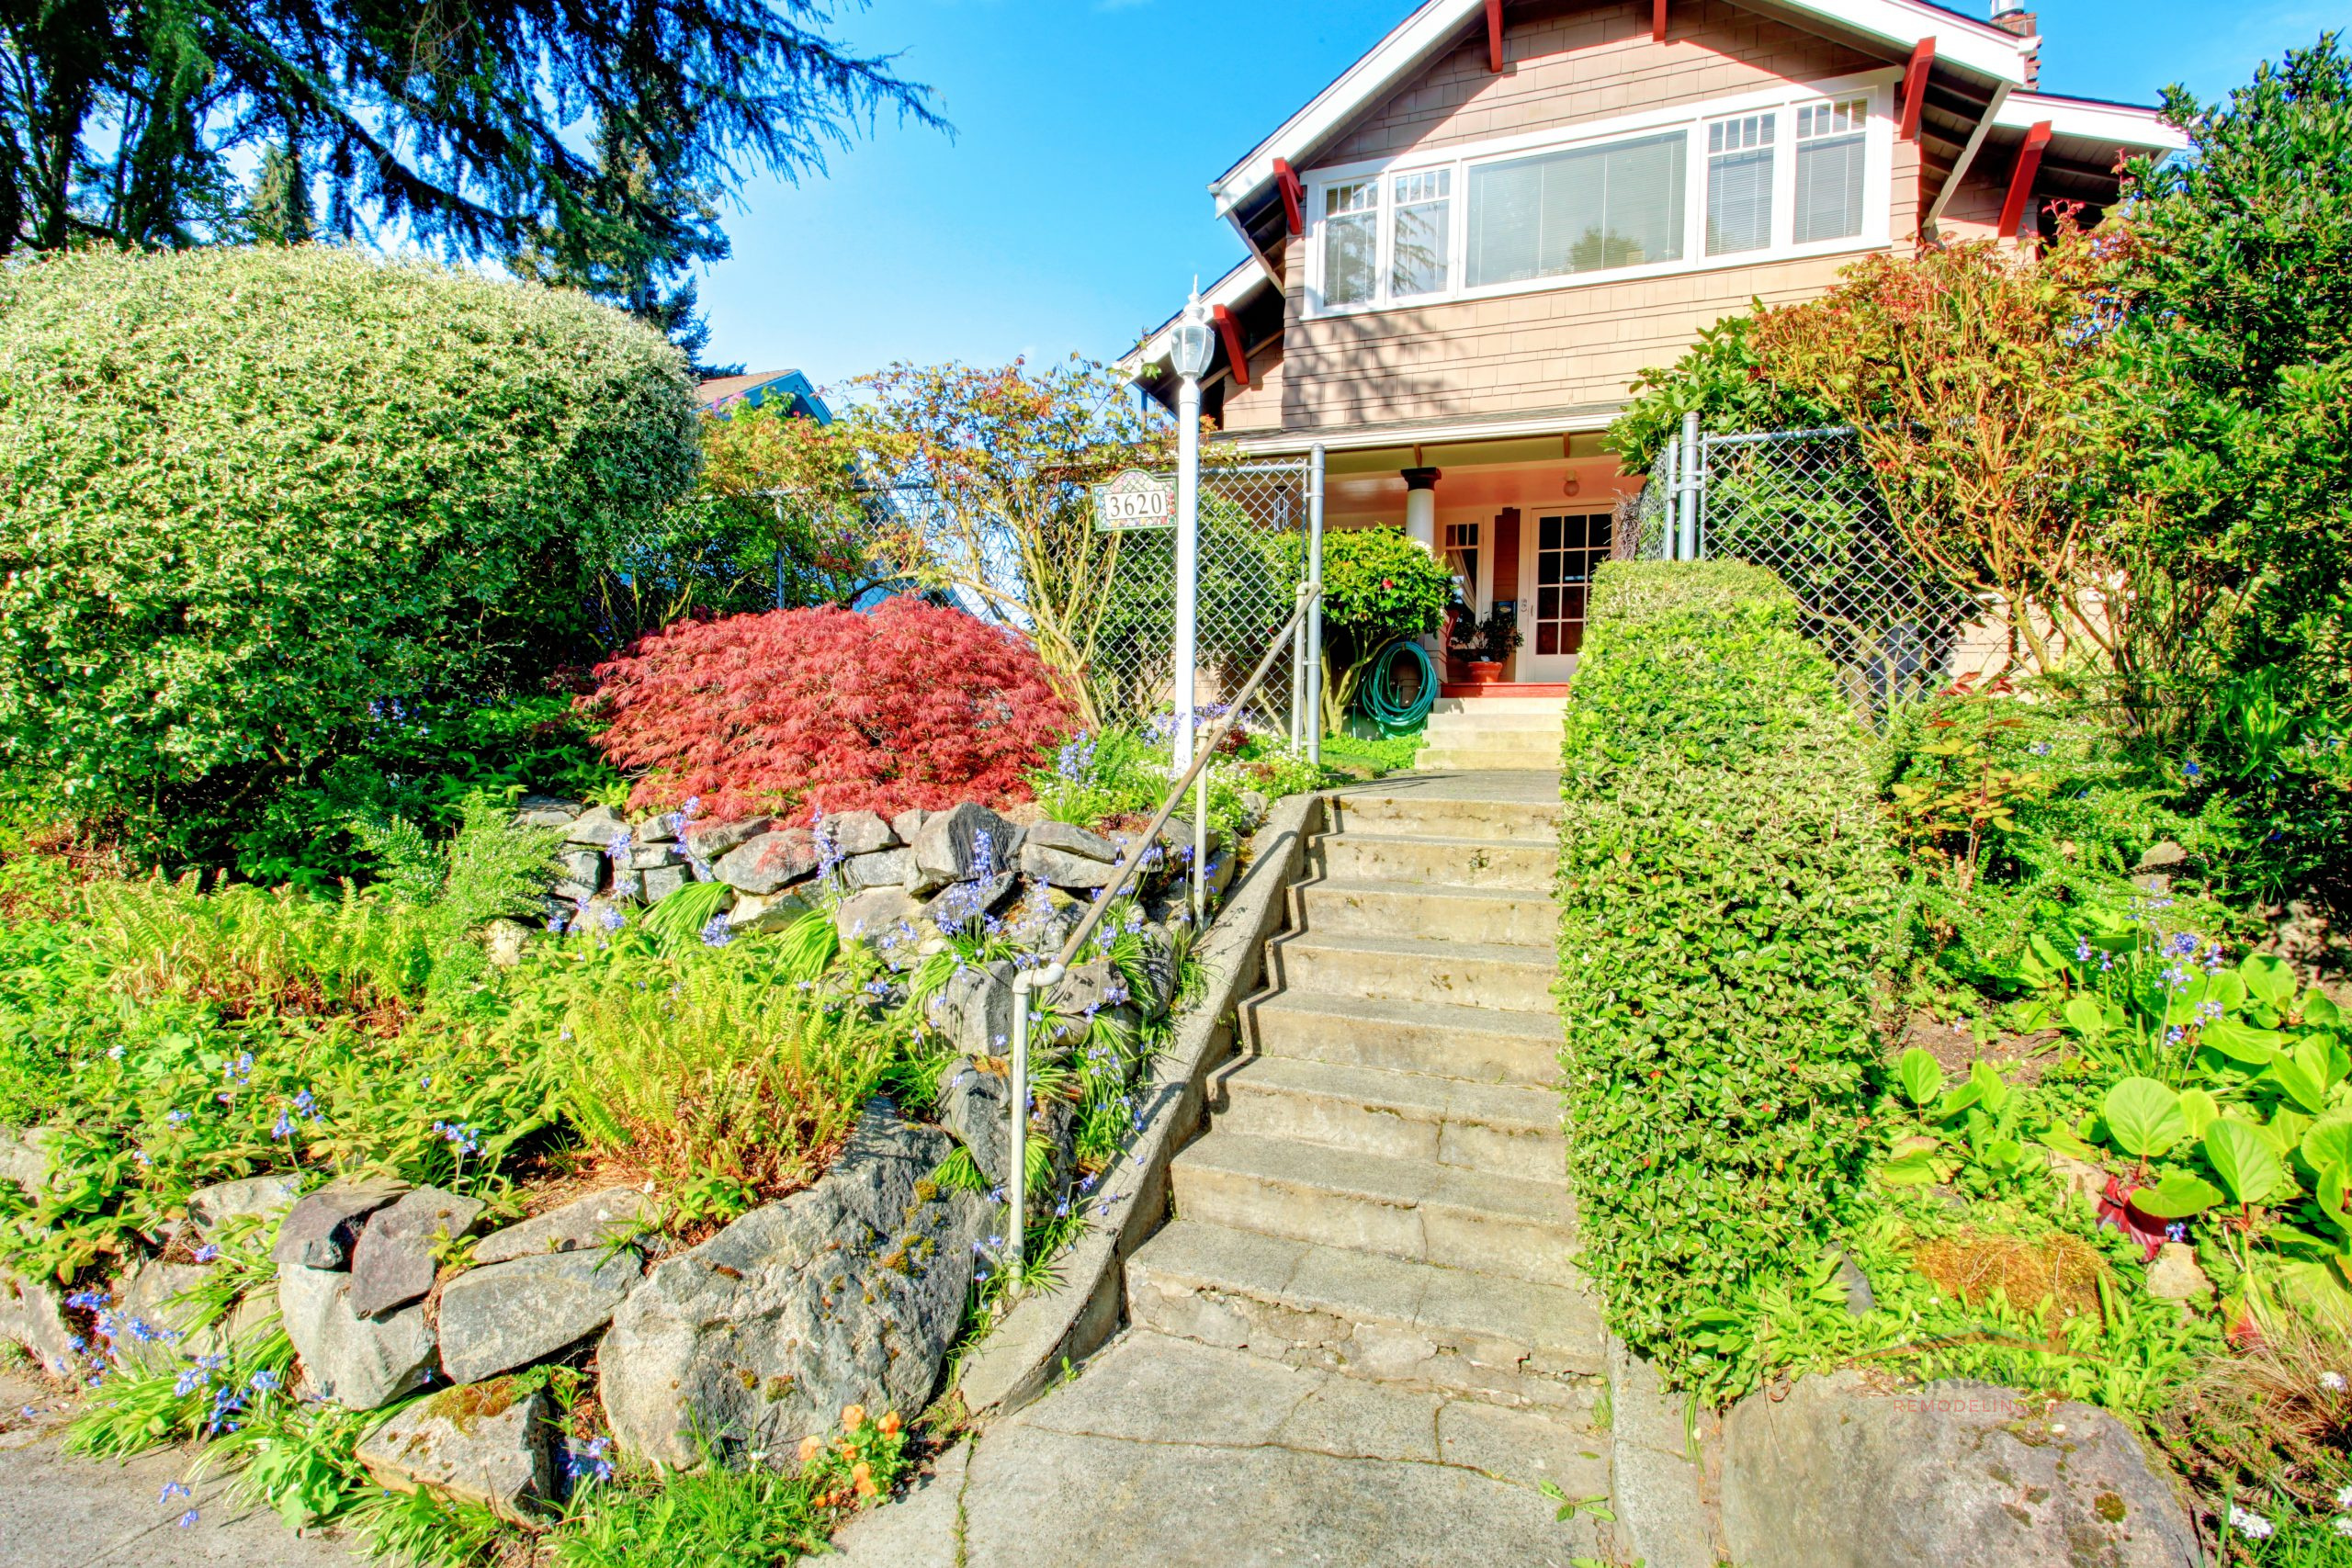 Big house with beautiful curb appeal and entrance gate